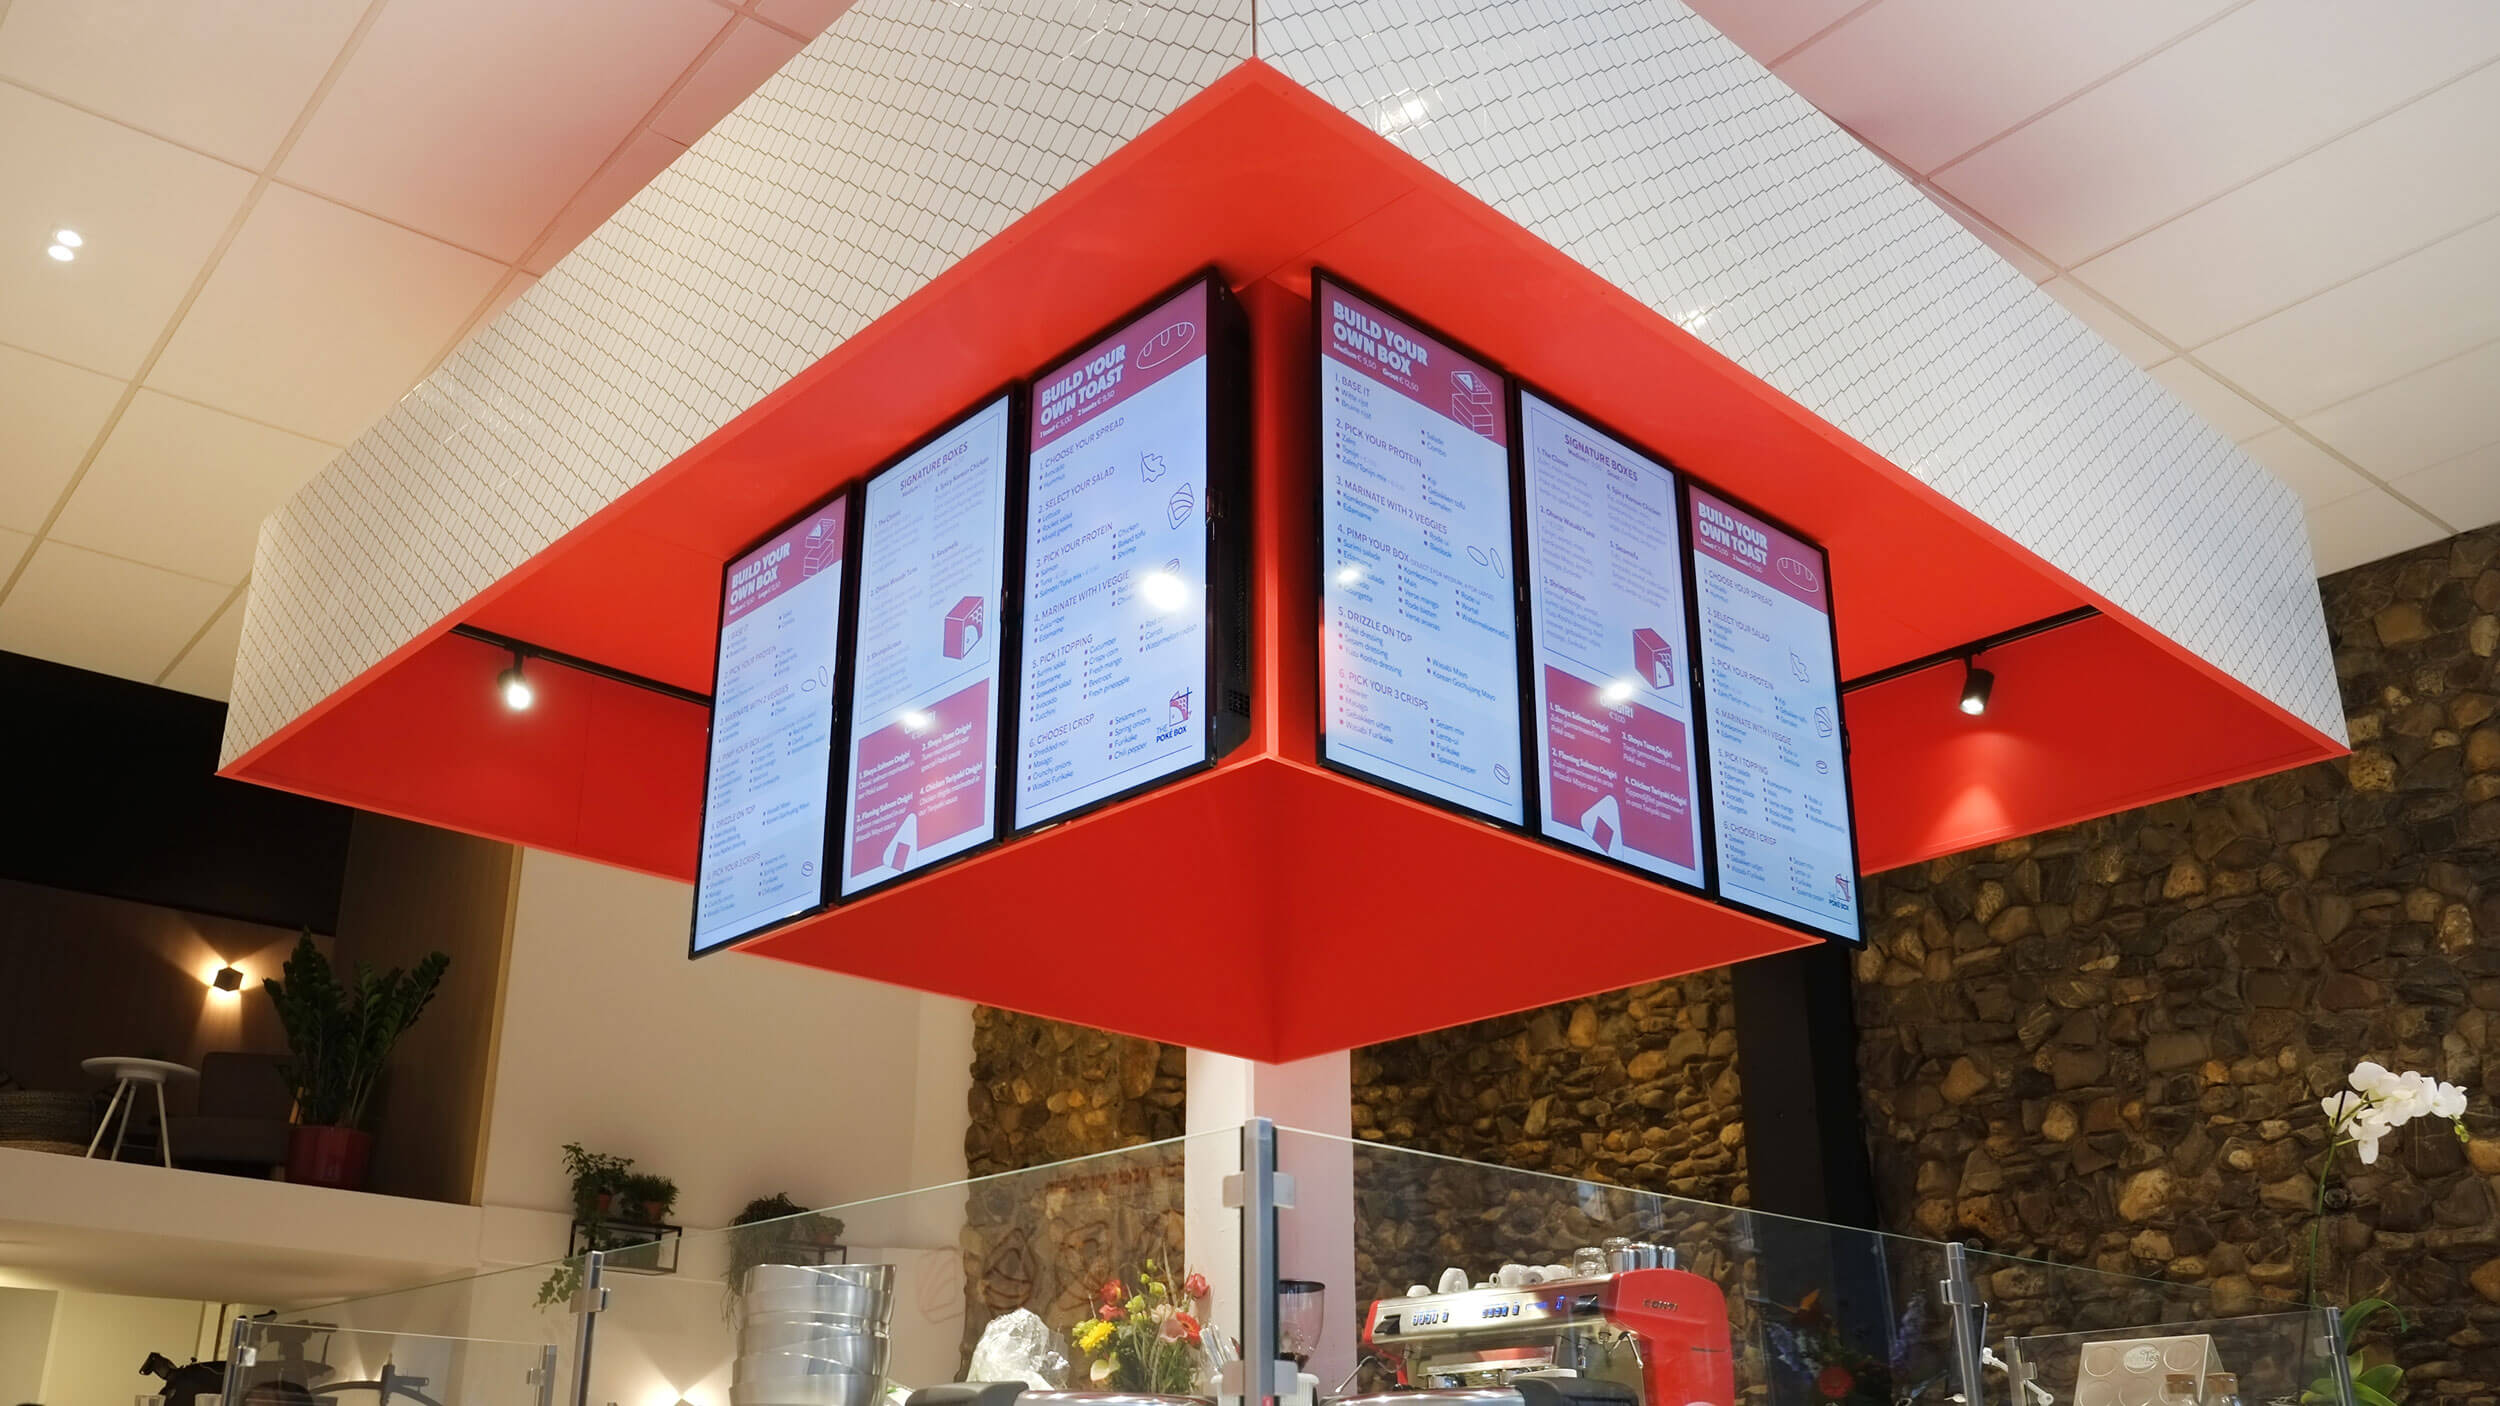 The Poké Box, menuschermen, Mixus studio